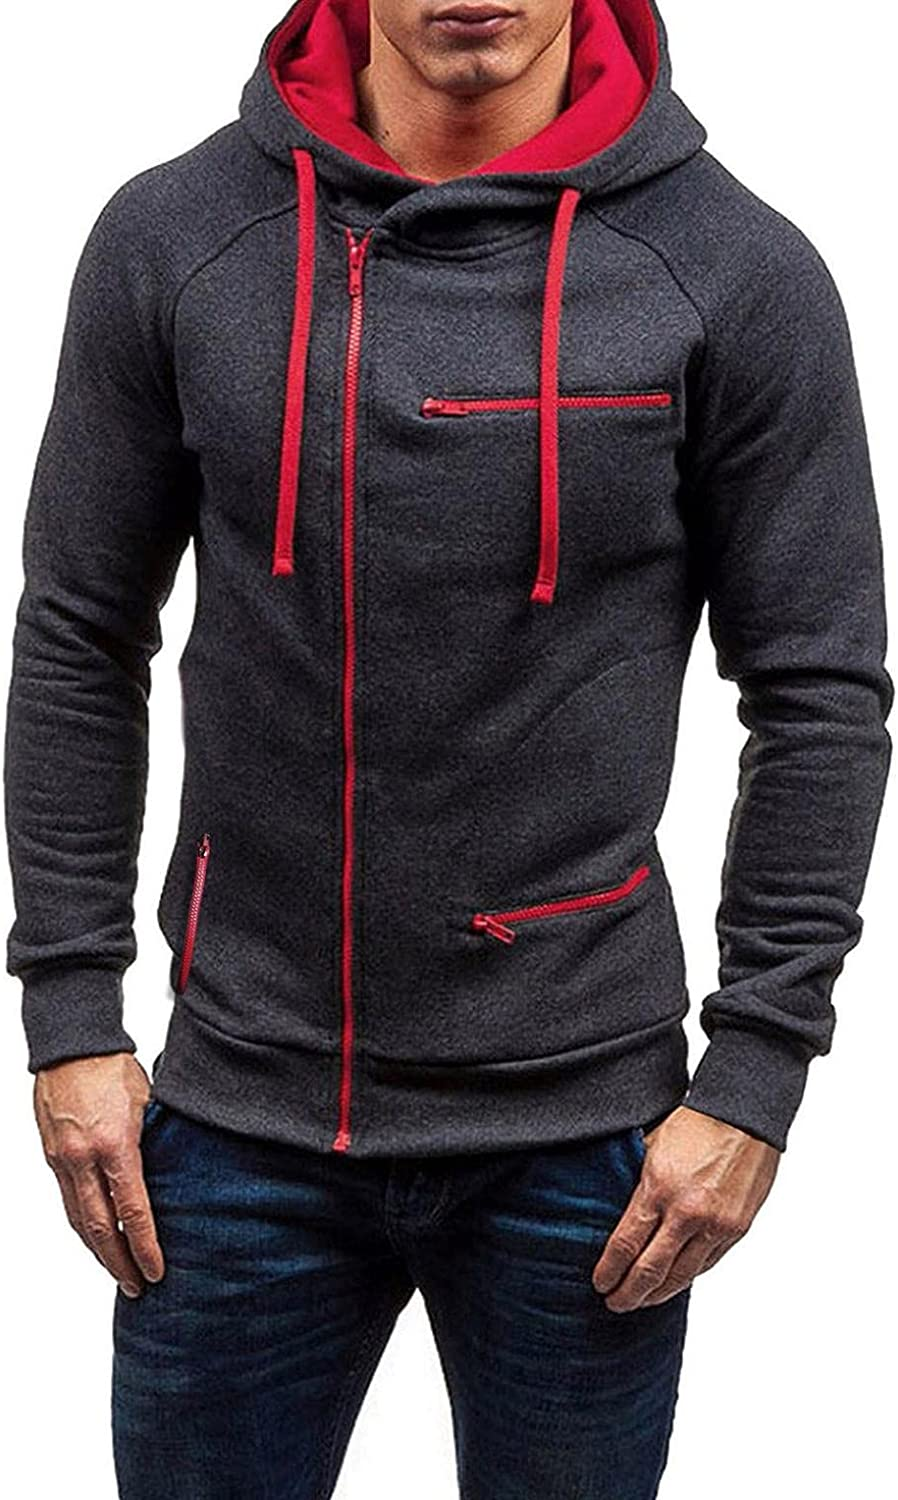 Men's Full-Zip Eco-Smart Fashion Hoodies Sweatshirts Casual Long Sleeve Zip Up Hooded Pullover Midweight Blouse Cotton